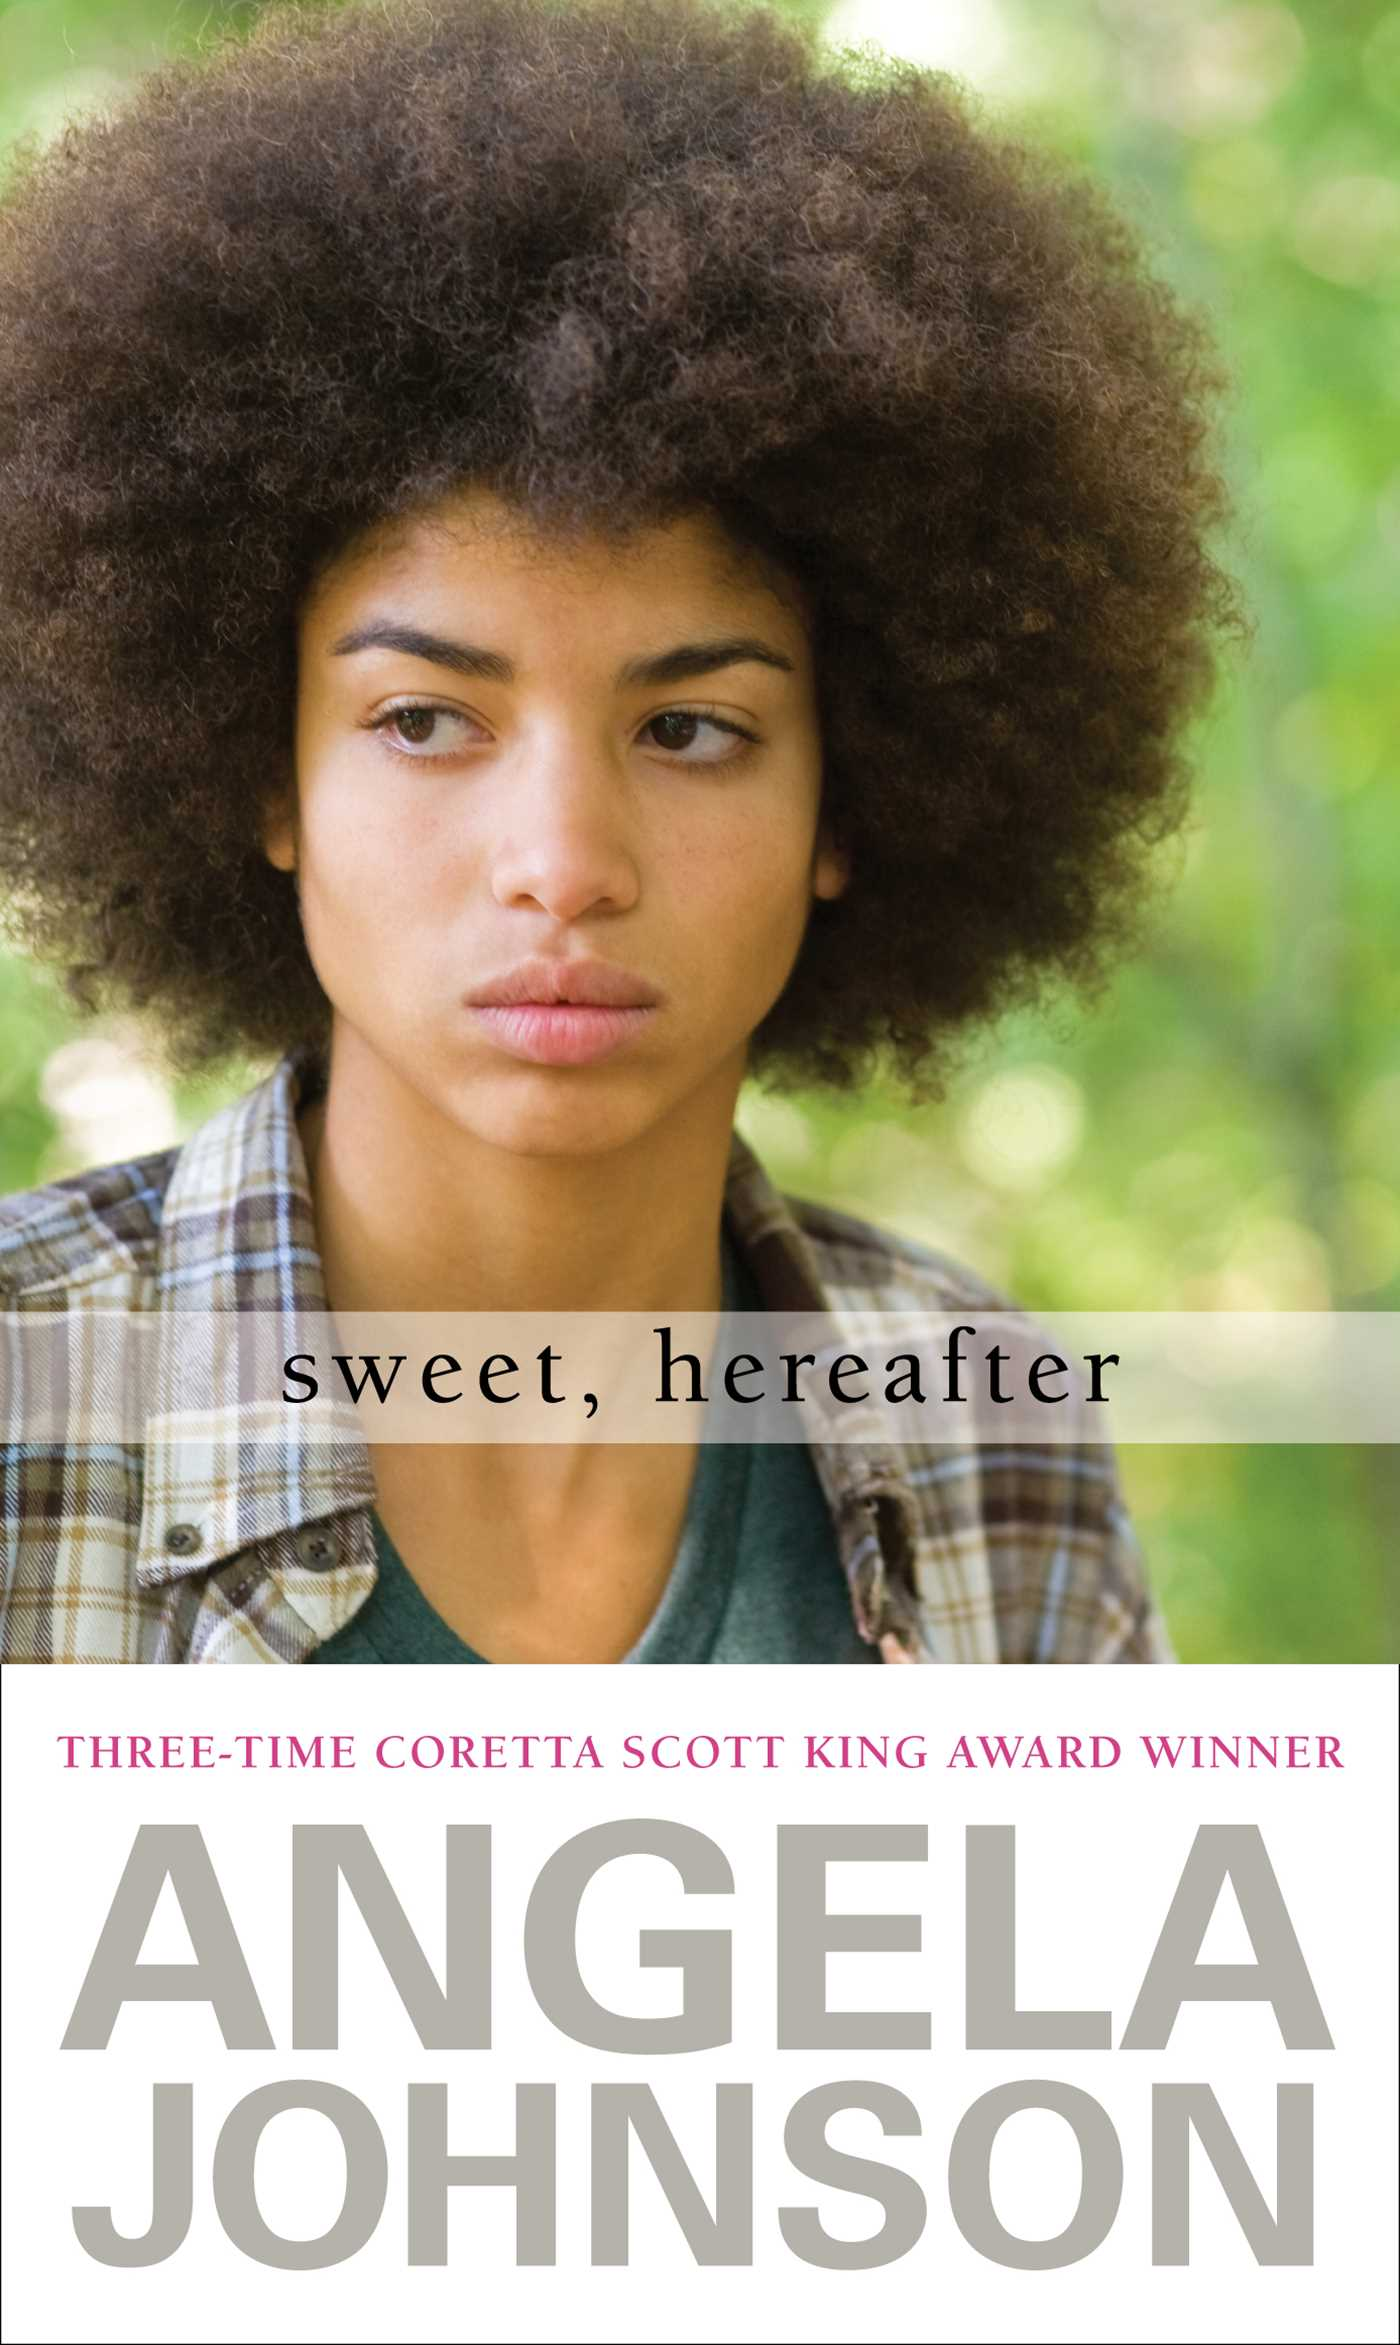 Sweet hereafter 9781416998655 hr